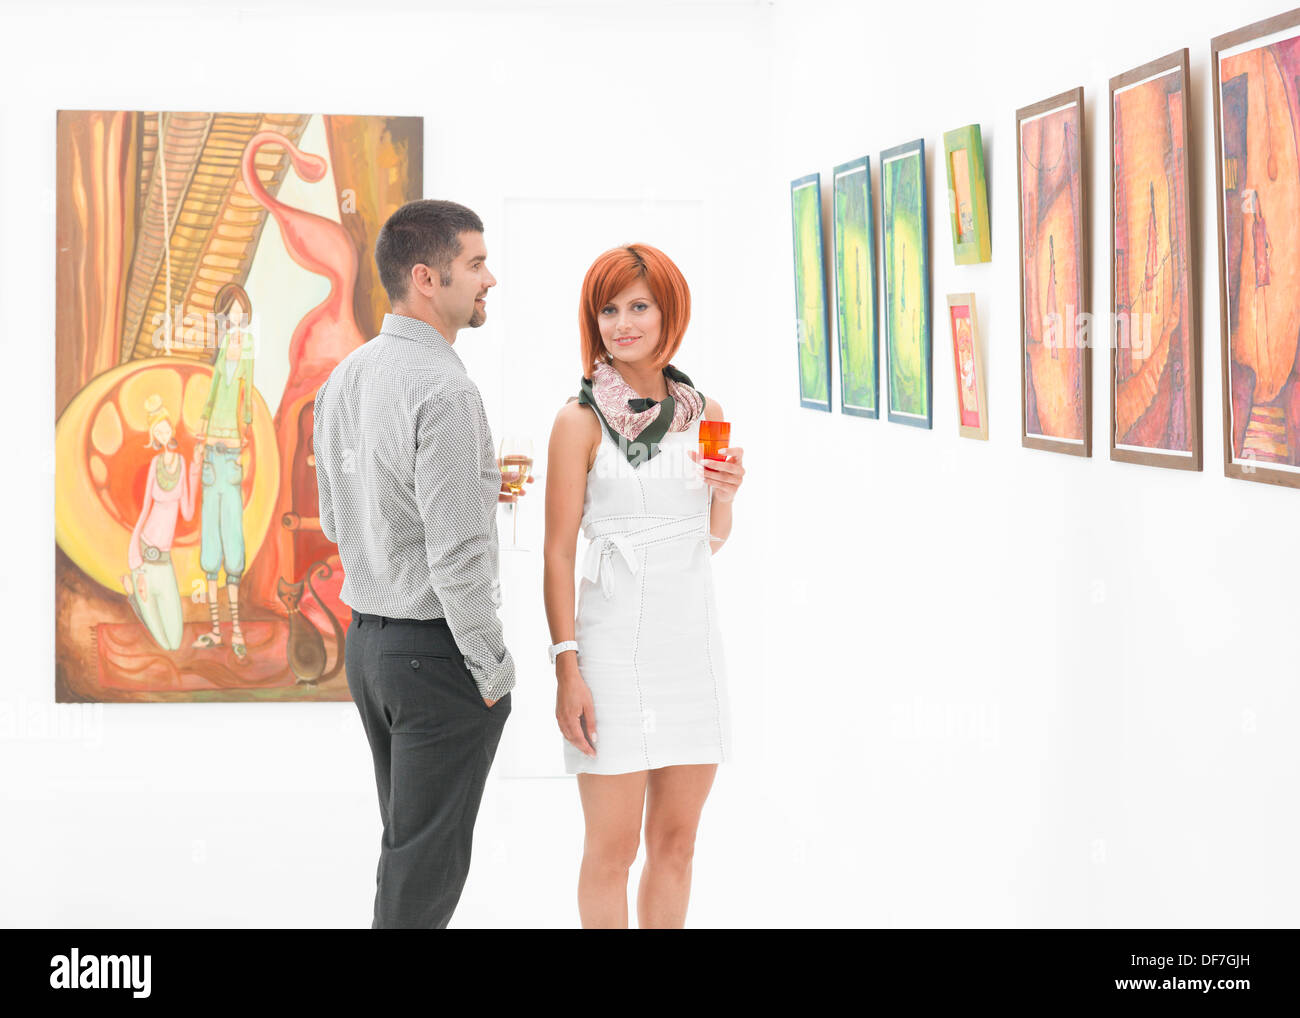 young beuatiful woman posing next to a caucasian man in an art gallery, holding colorful glasses of wine in their hands - Stock Image